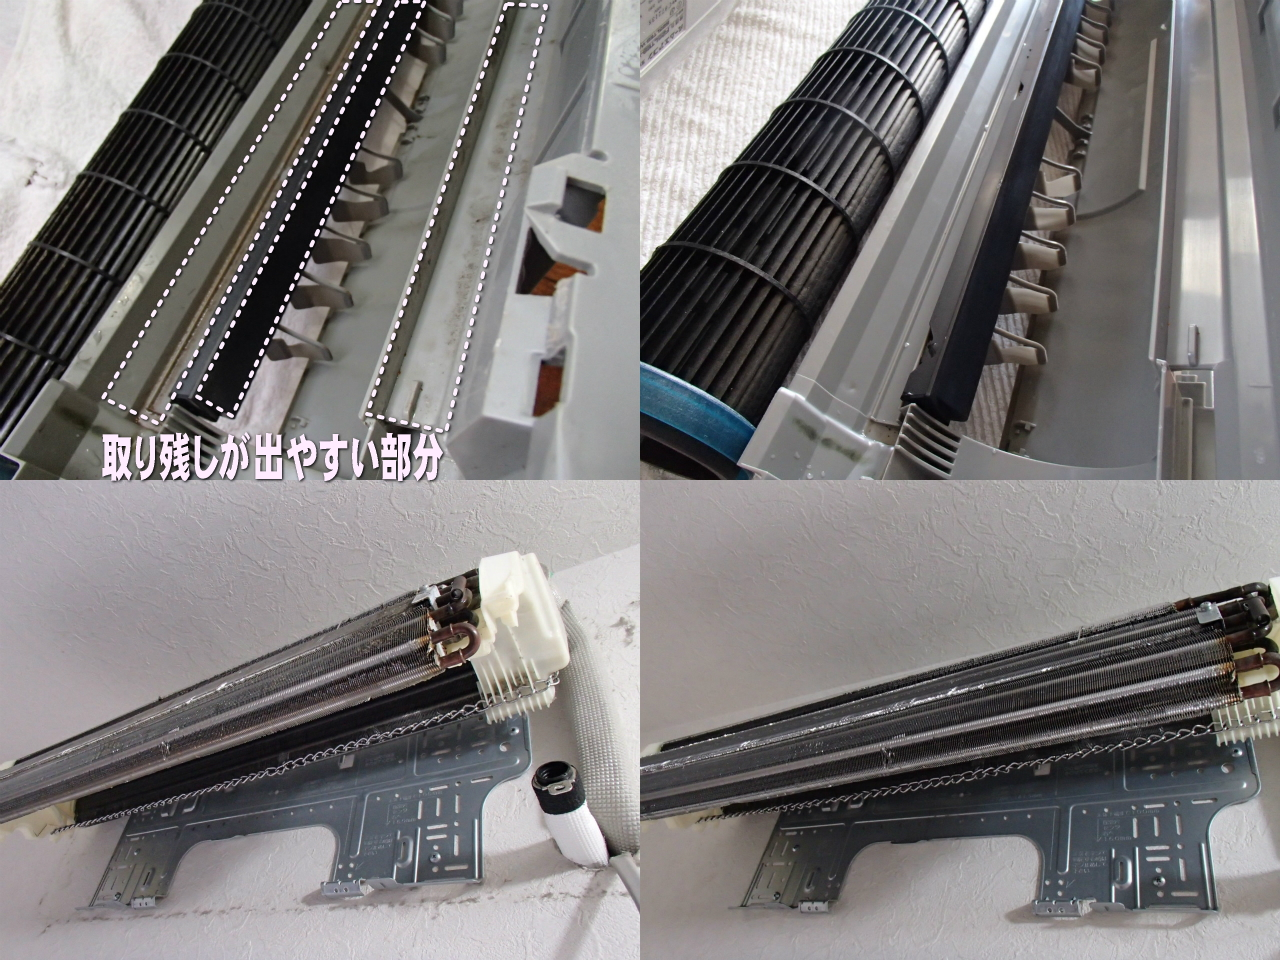 http://ajras.net/images/120903-aircon3.jpg